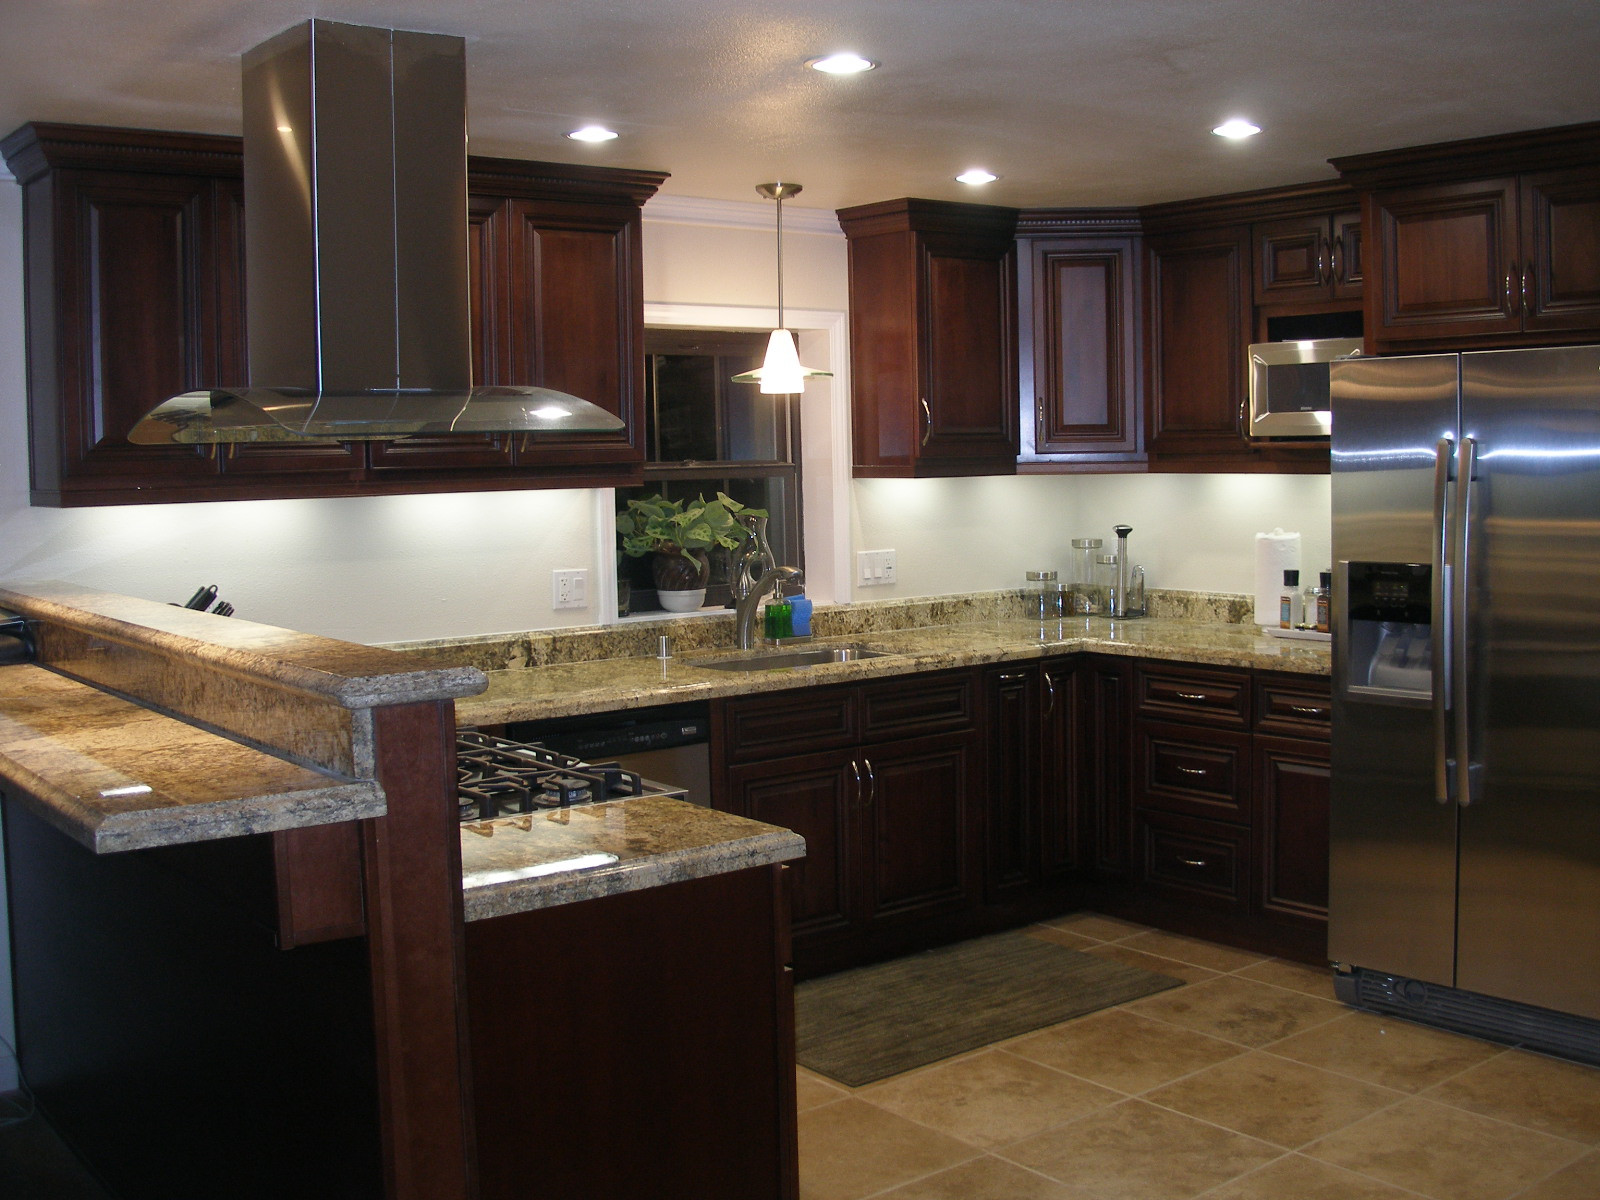 Kitchen remodel bay easy construction for Kitchen remodel ideas for older homes